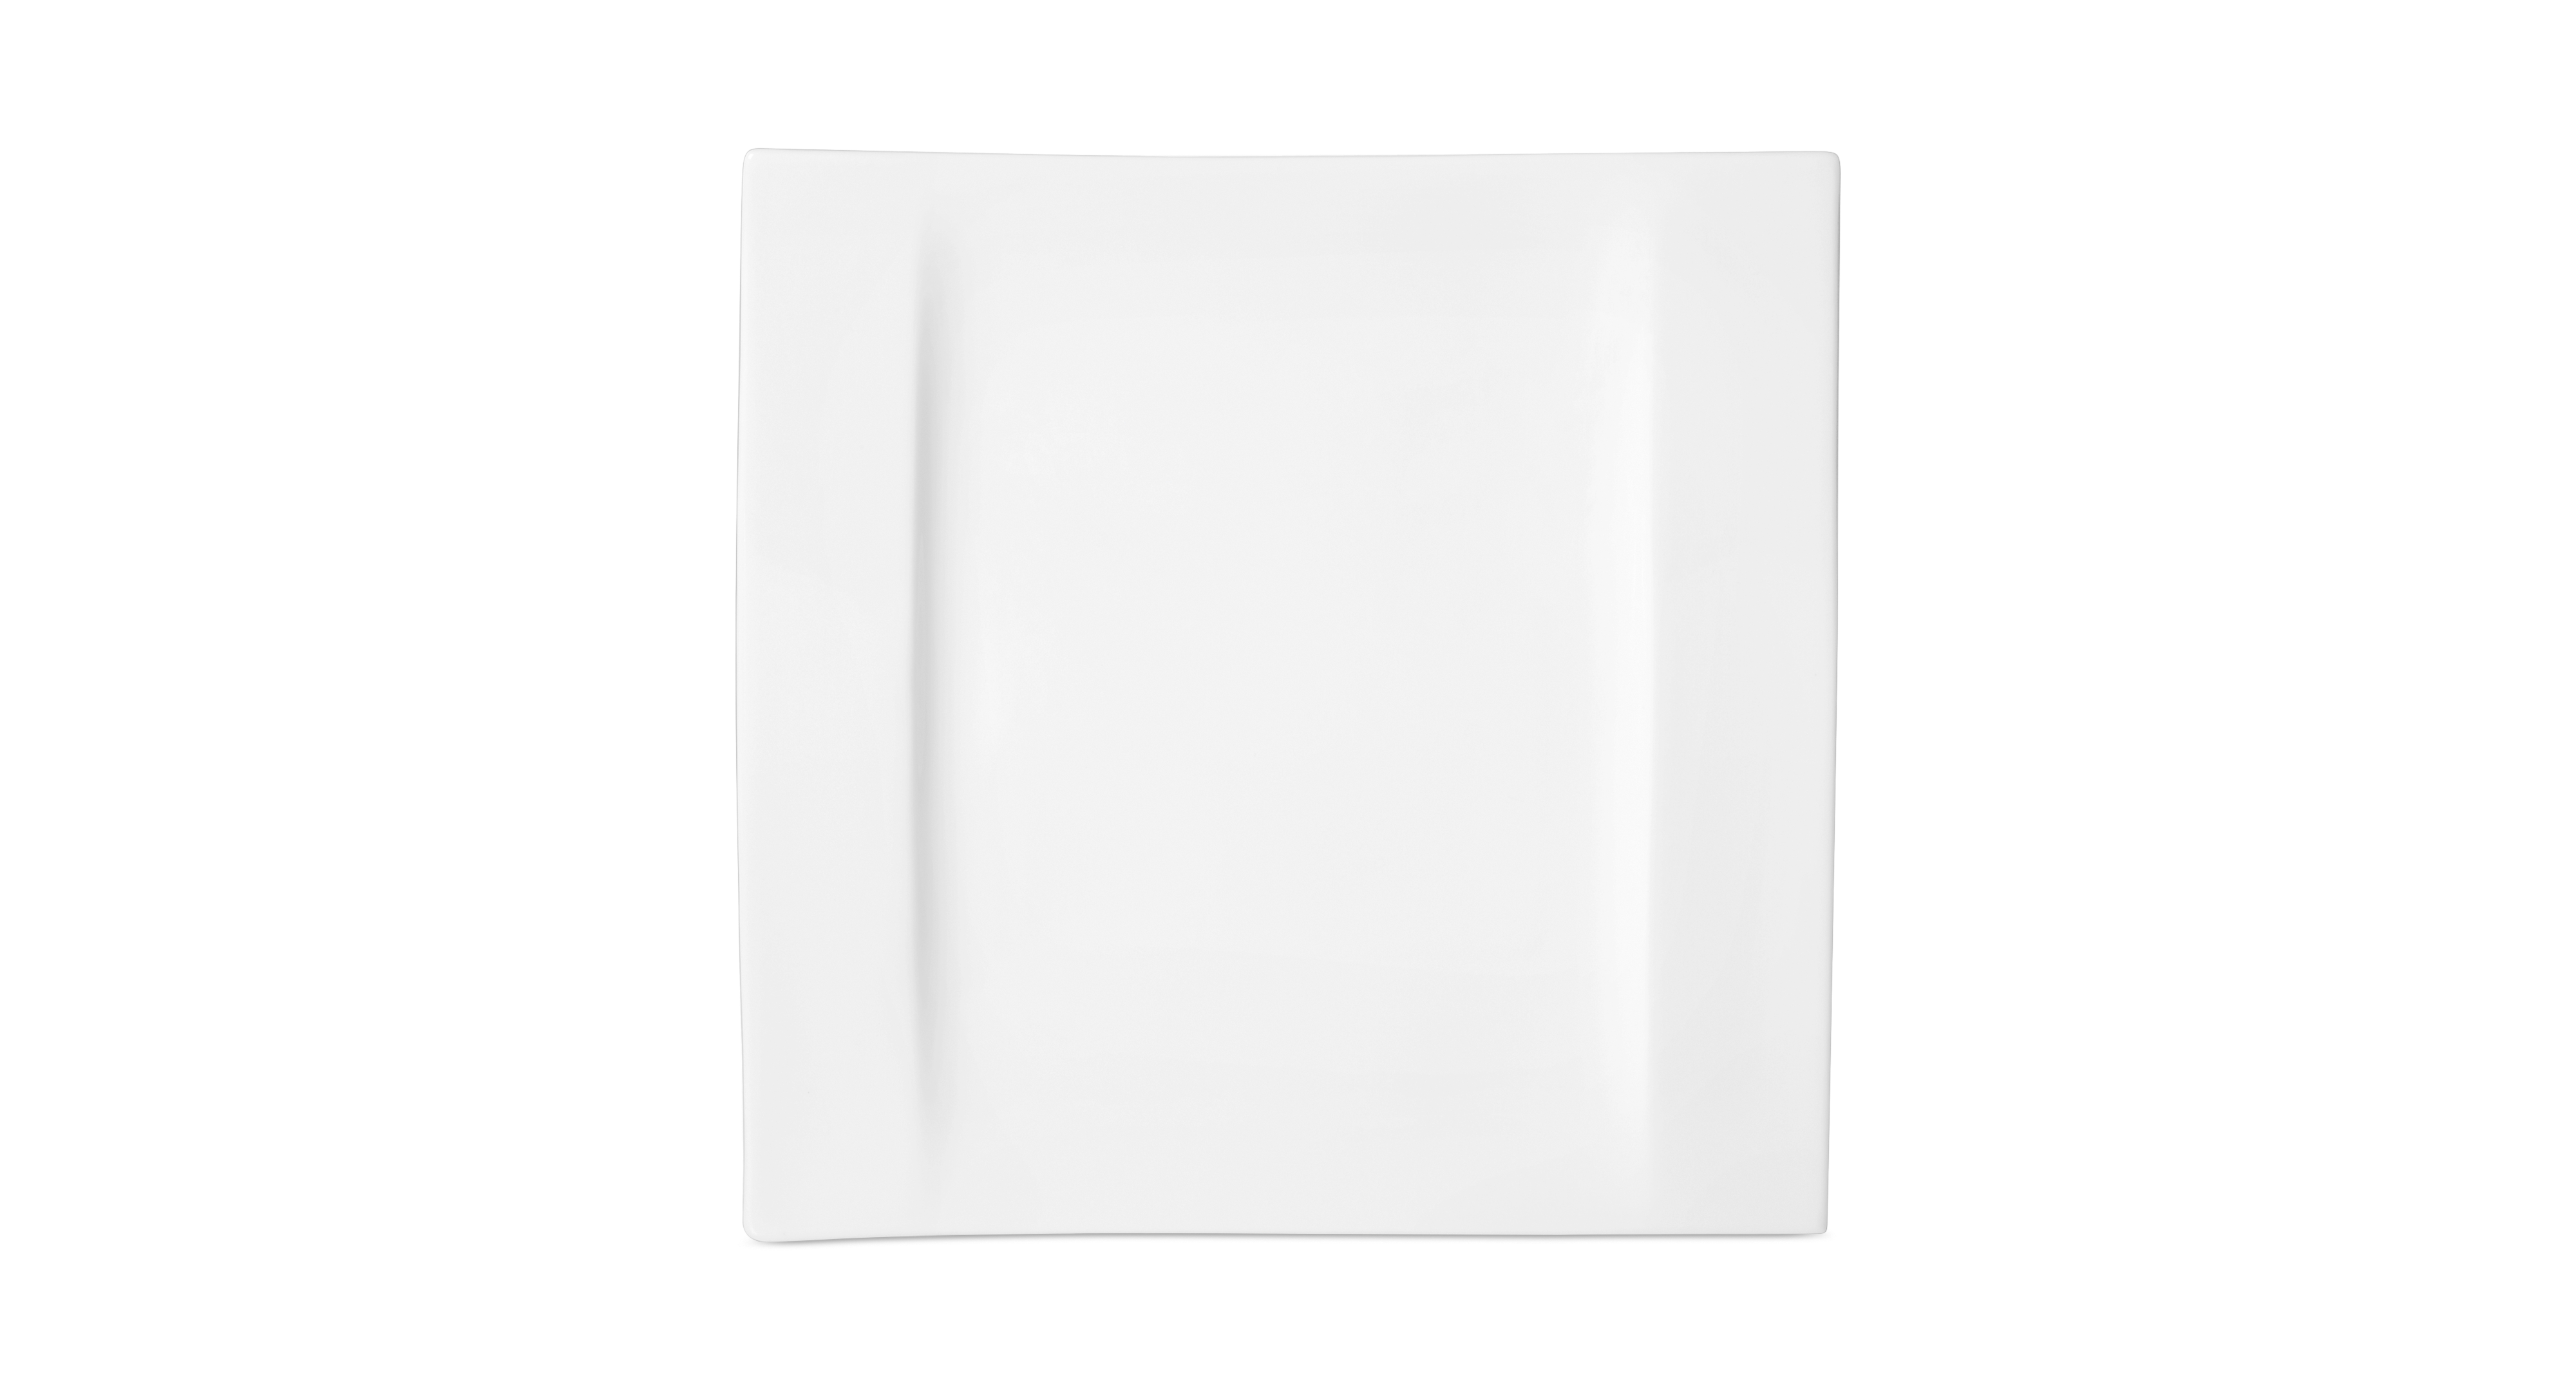 mikasa dinnerware modern white dinner plate  products  - mikasa dinnerware modern white dinner plate